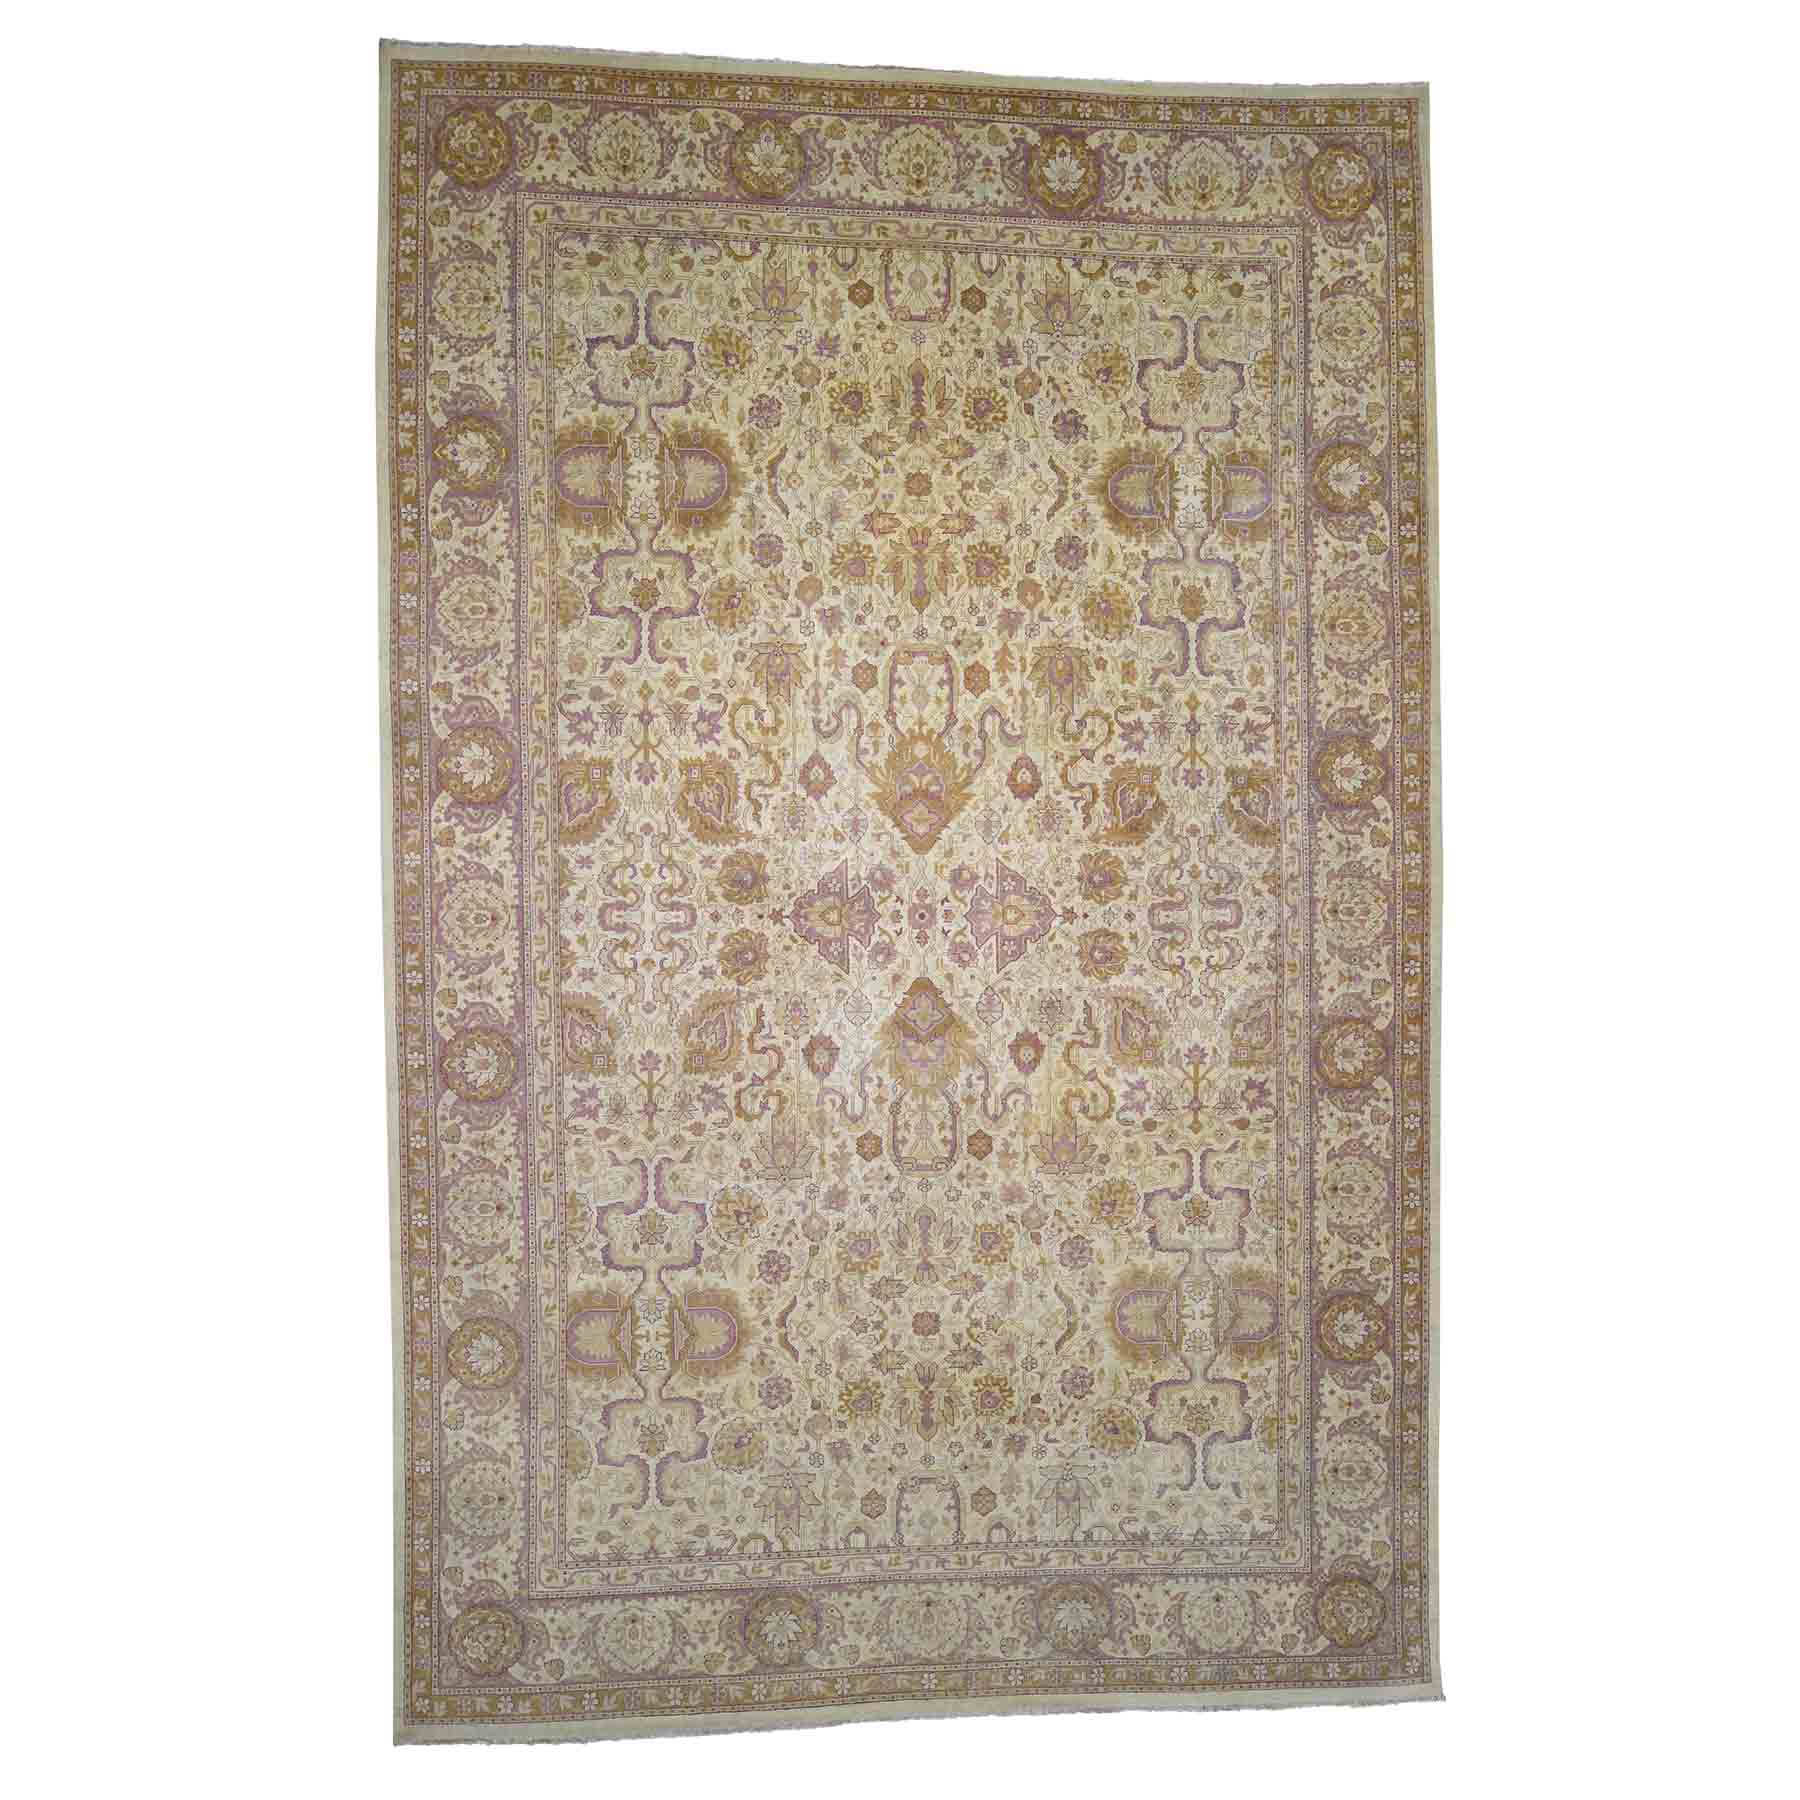 "10'7""x16'4"" Antique Mughal Amritsar Good Condition Even Wear Hand-Knotted Oriental Oversize Rug"